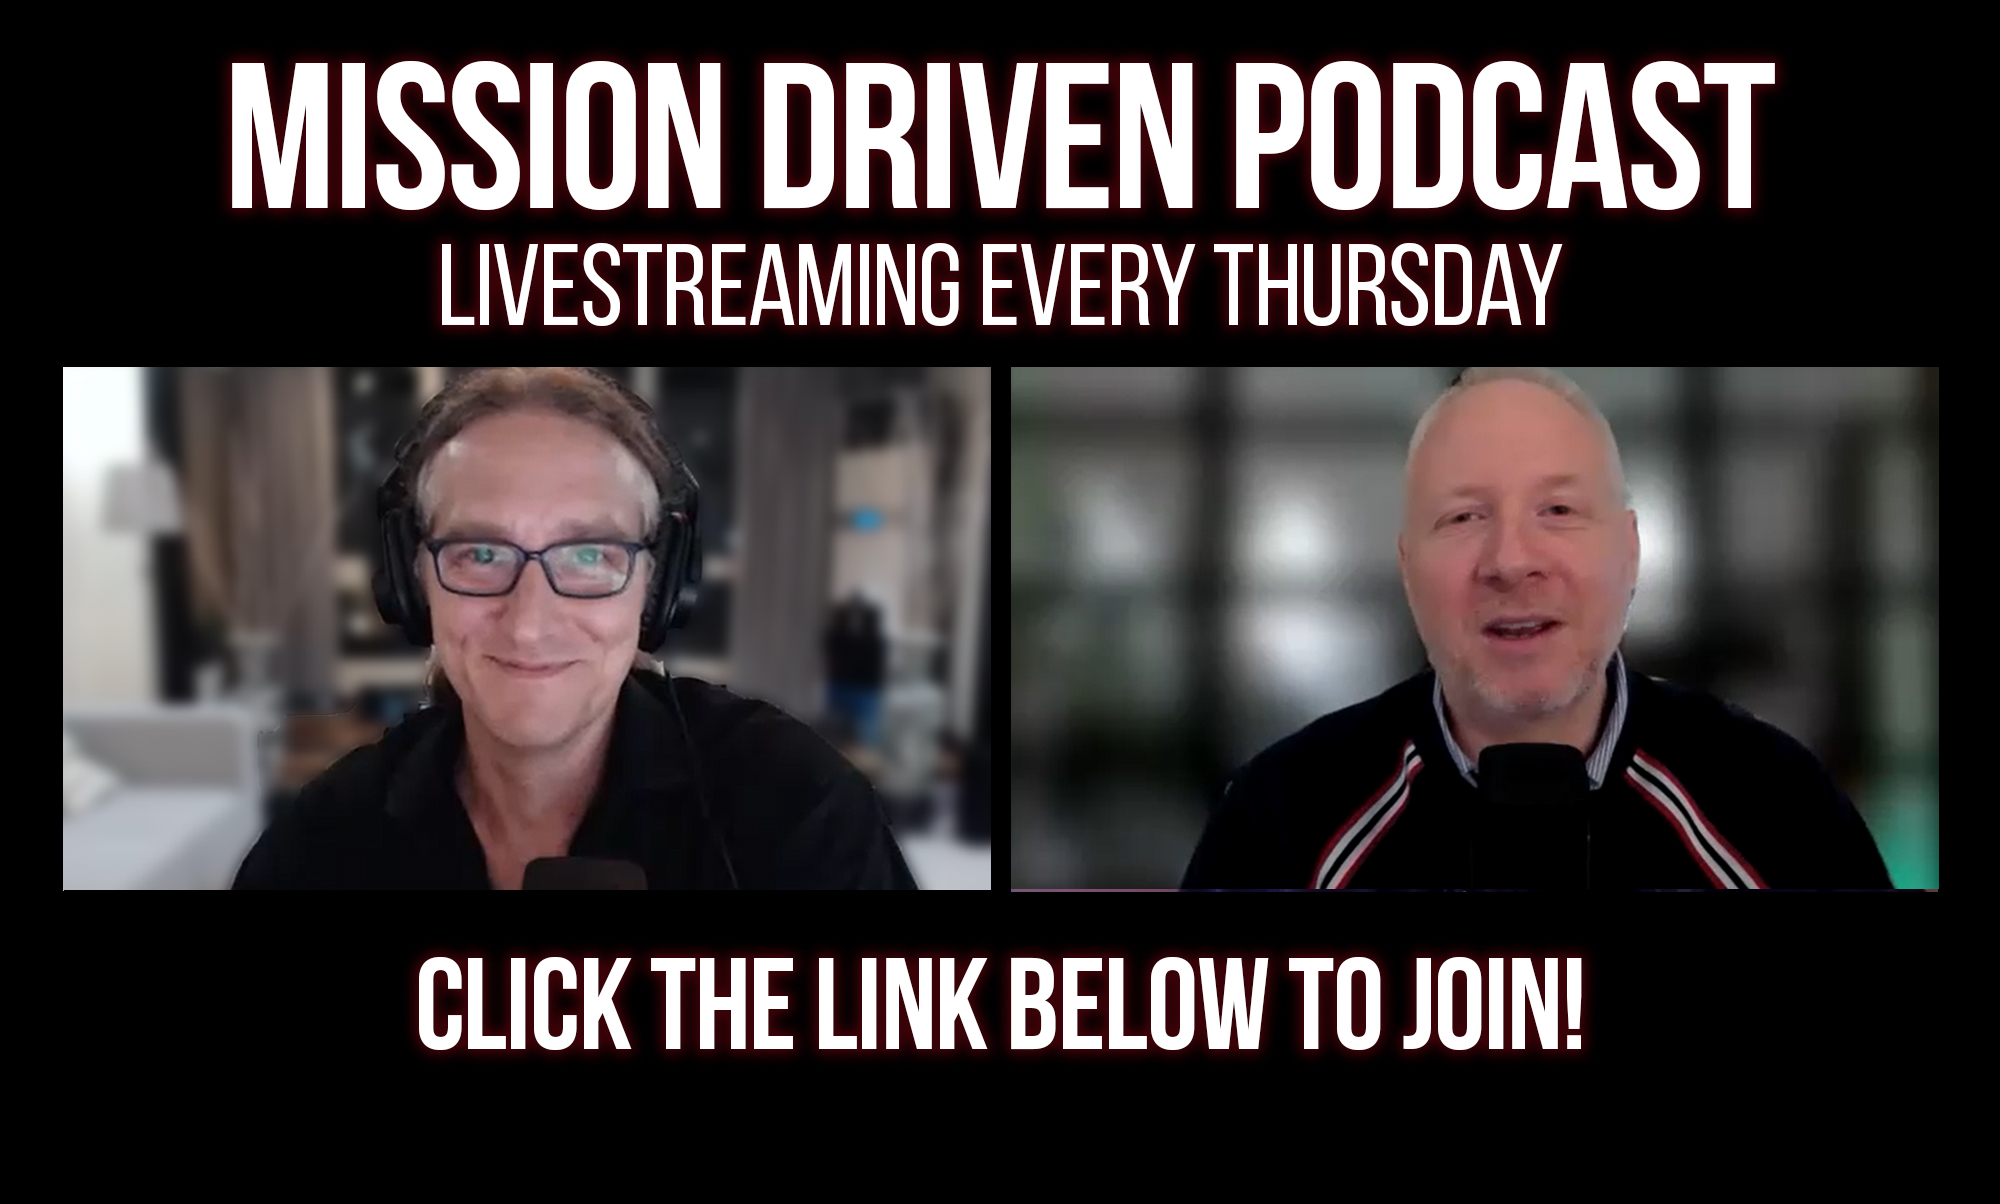 Mission Driven Podcast